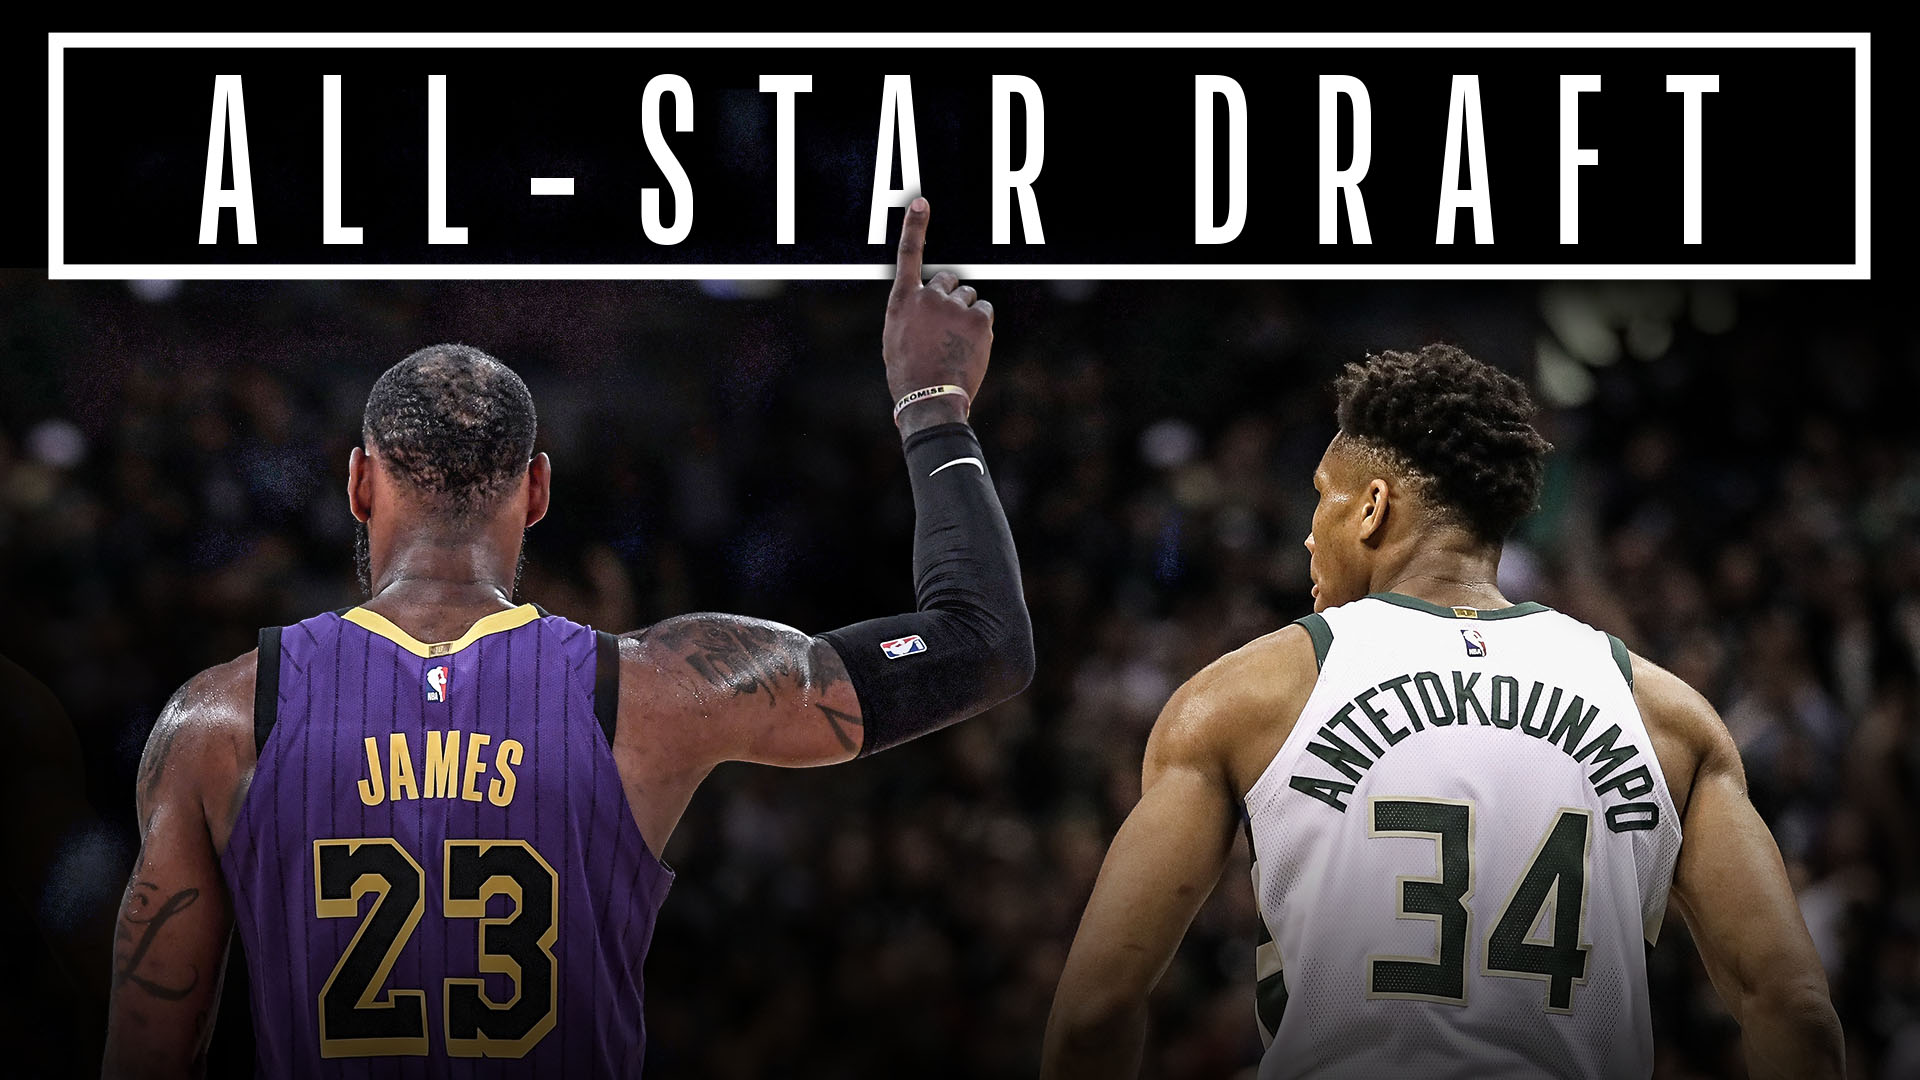 2020 Nba All Star Mock Draft Who Will Lebron James And Giannis Antetokounmpo Select Nba Com India The Official Site Of The Nba